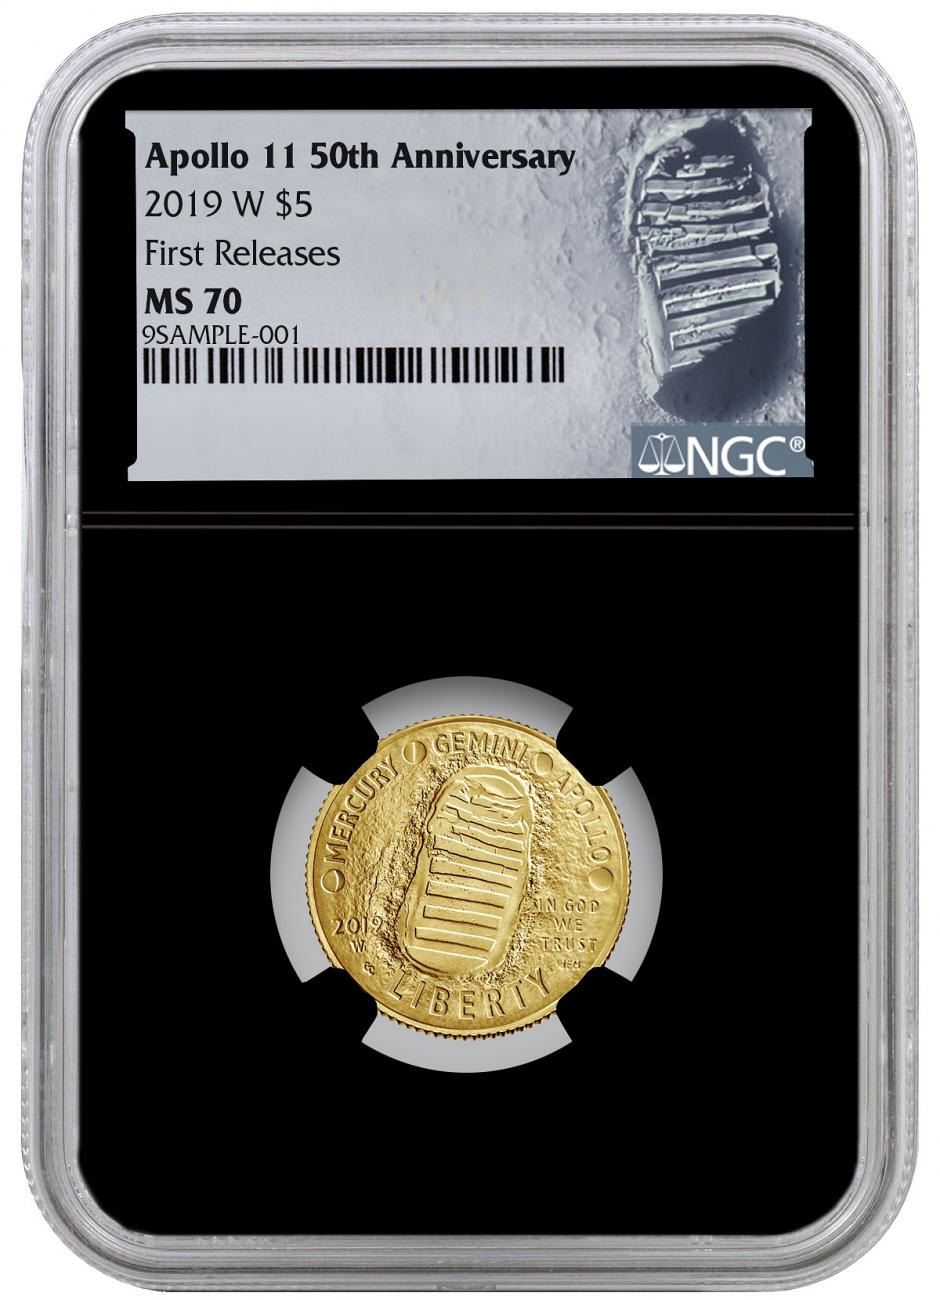 2019-W US Apollo 11 50th Anniversary $5 Gold Commemorative Coin NGC MS70  First Release Black Core Holder Moon Label - ModernCoinMart